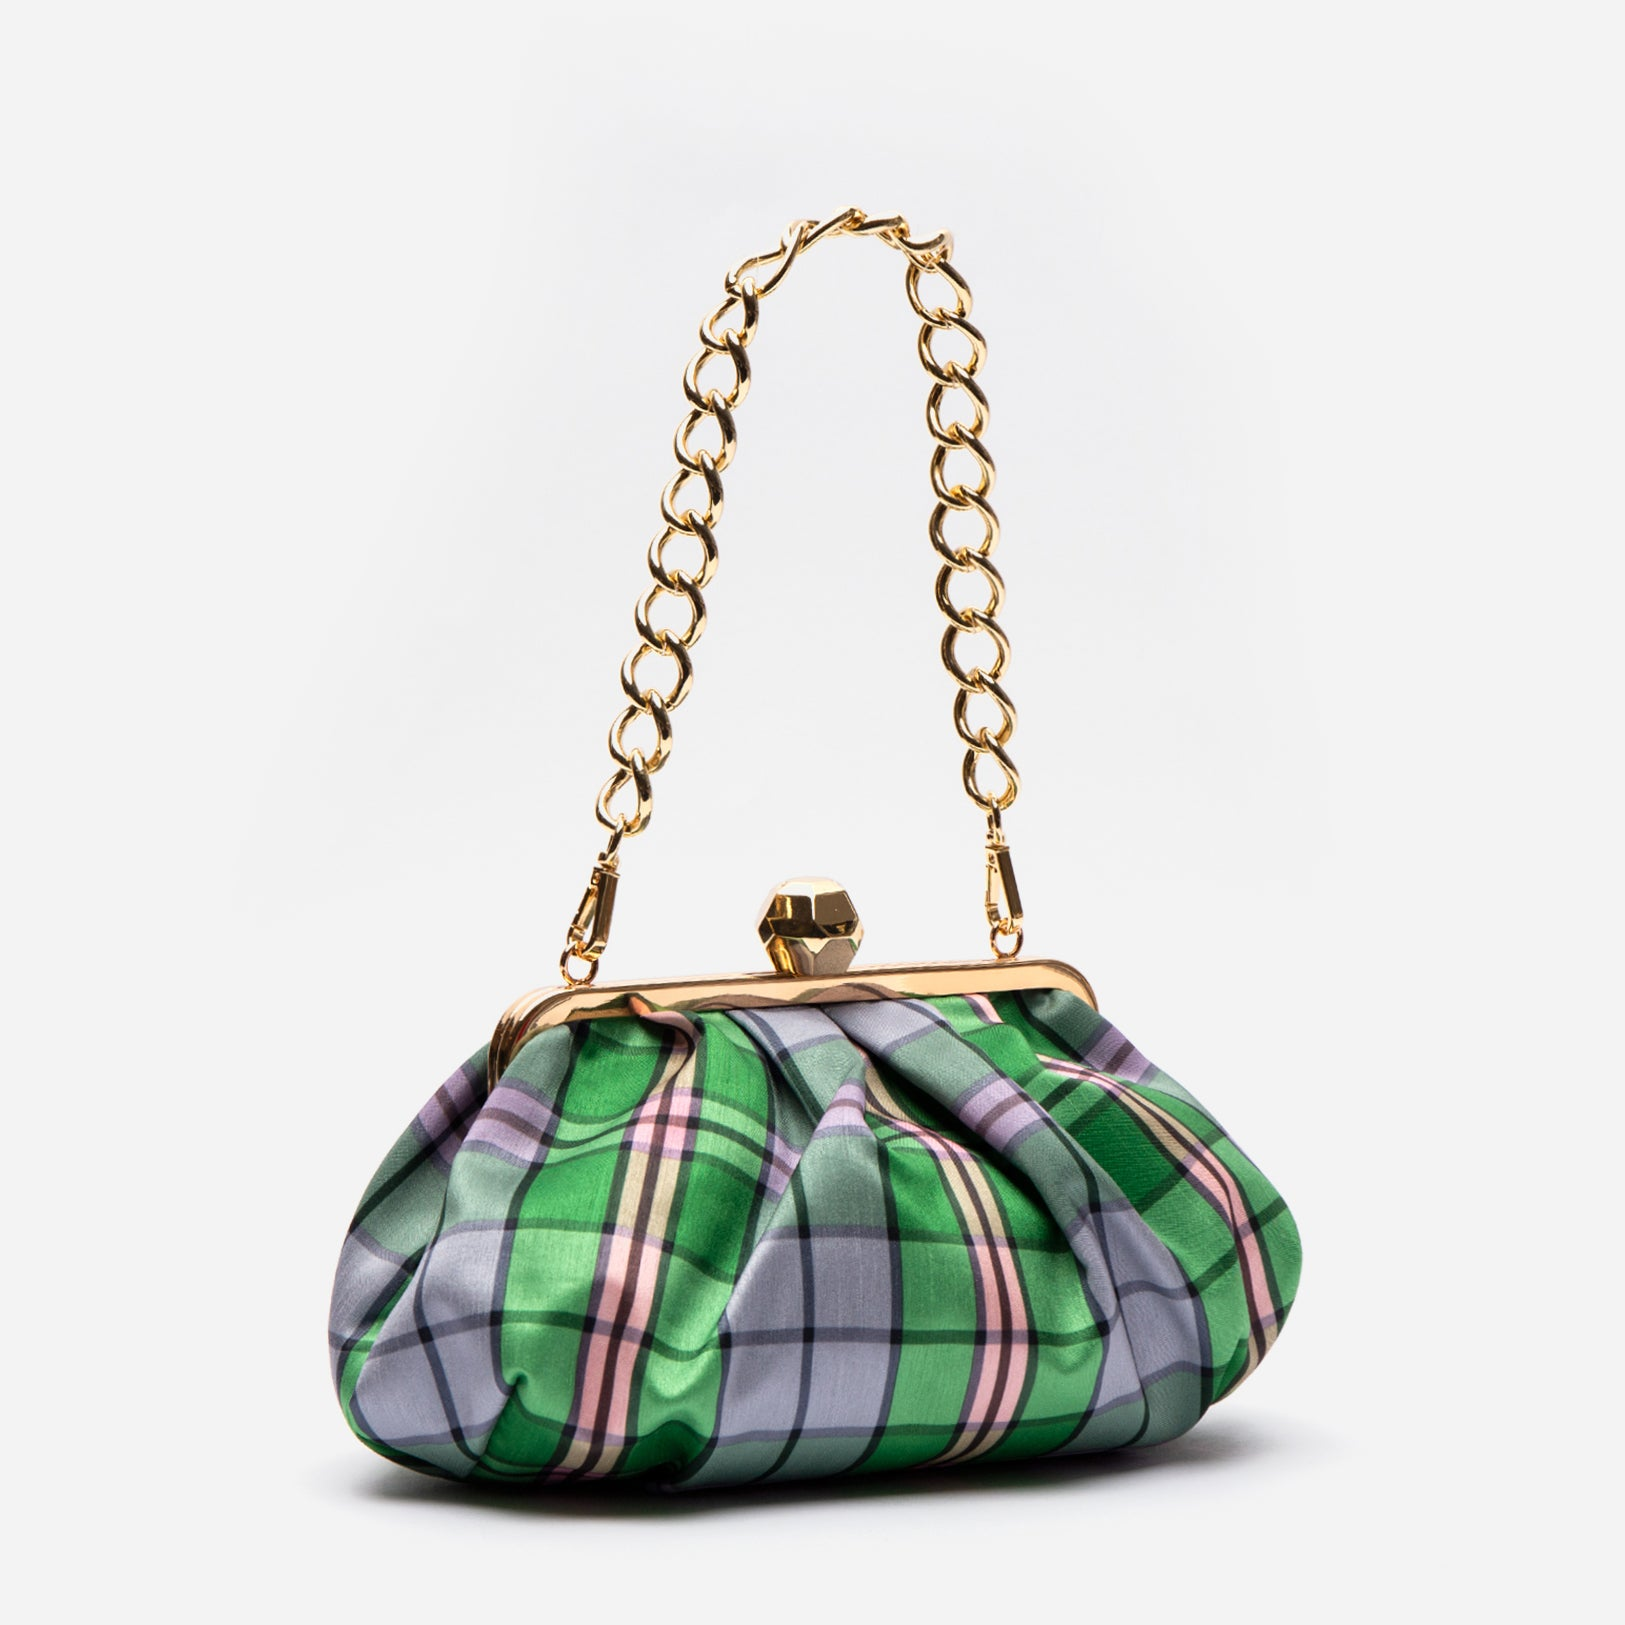 Zelda Frame Bag Nantucket Plaid